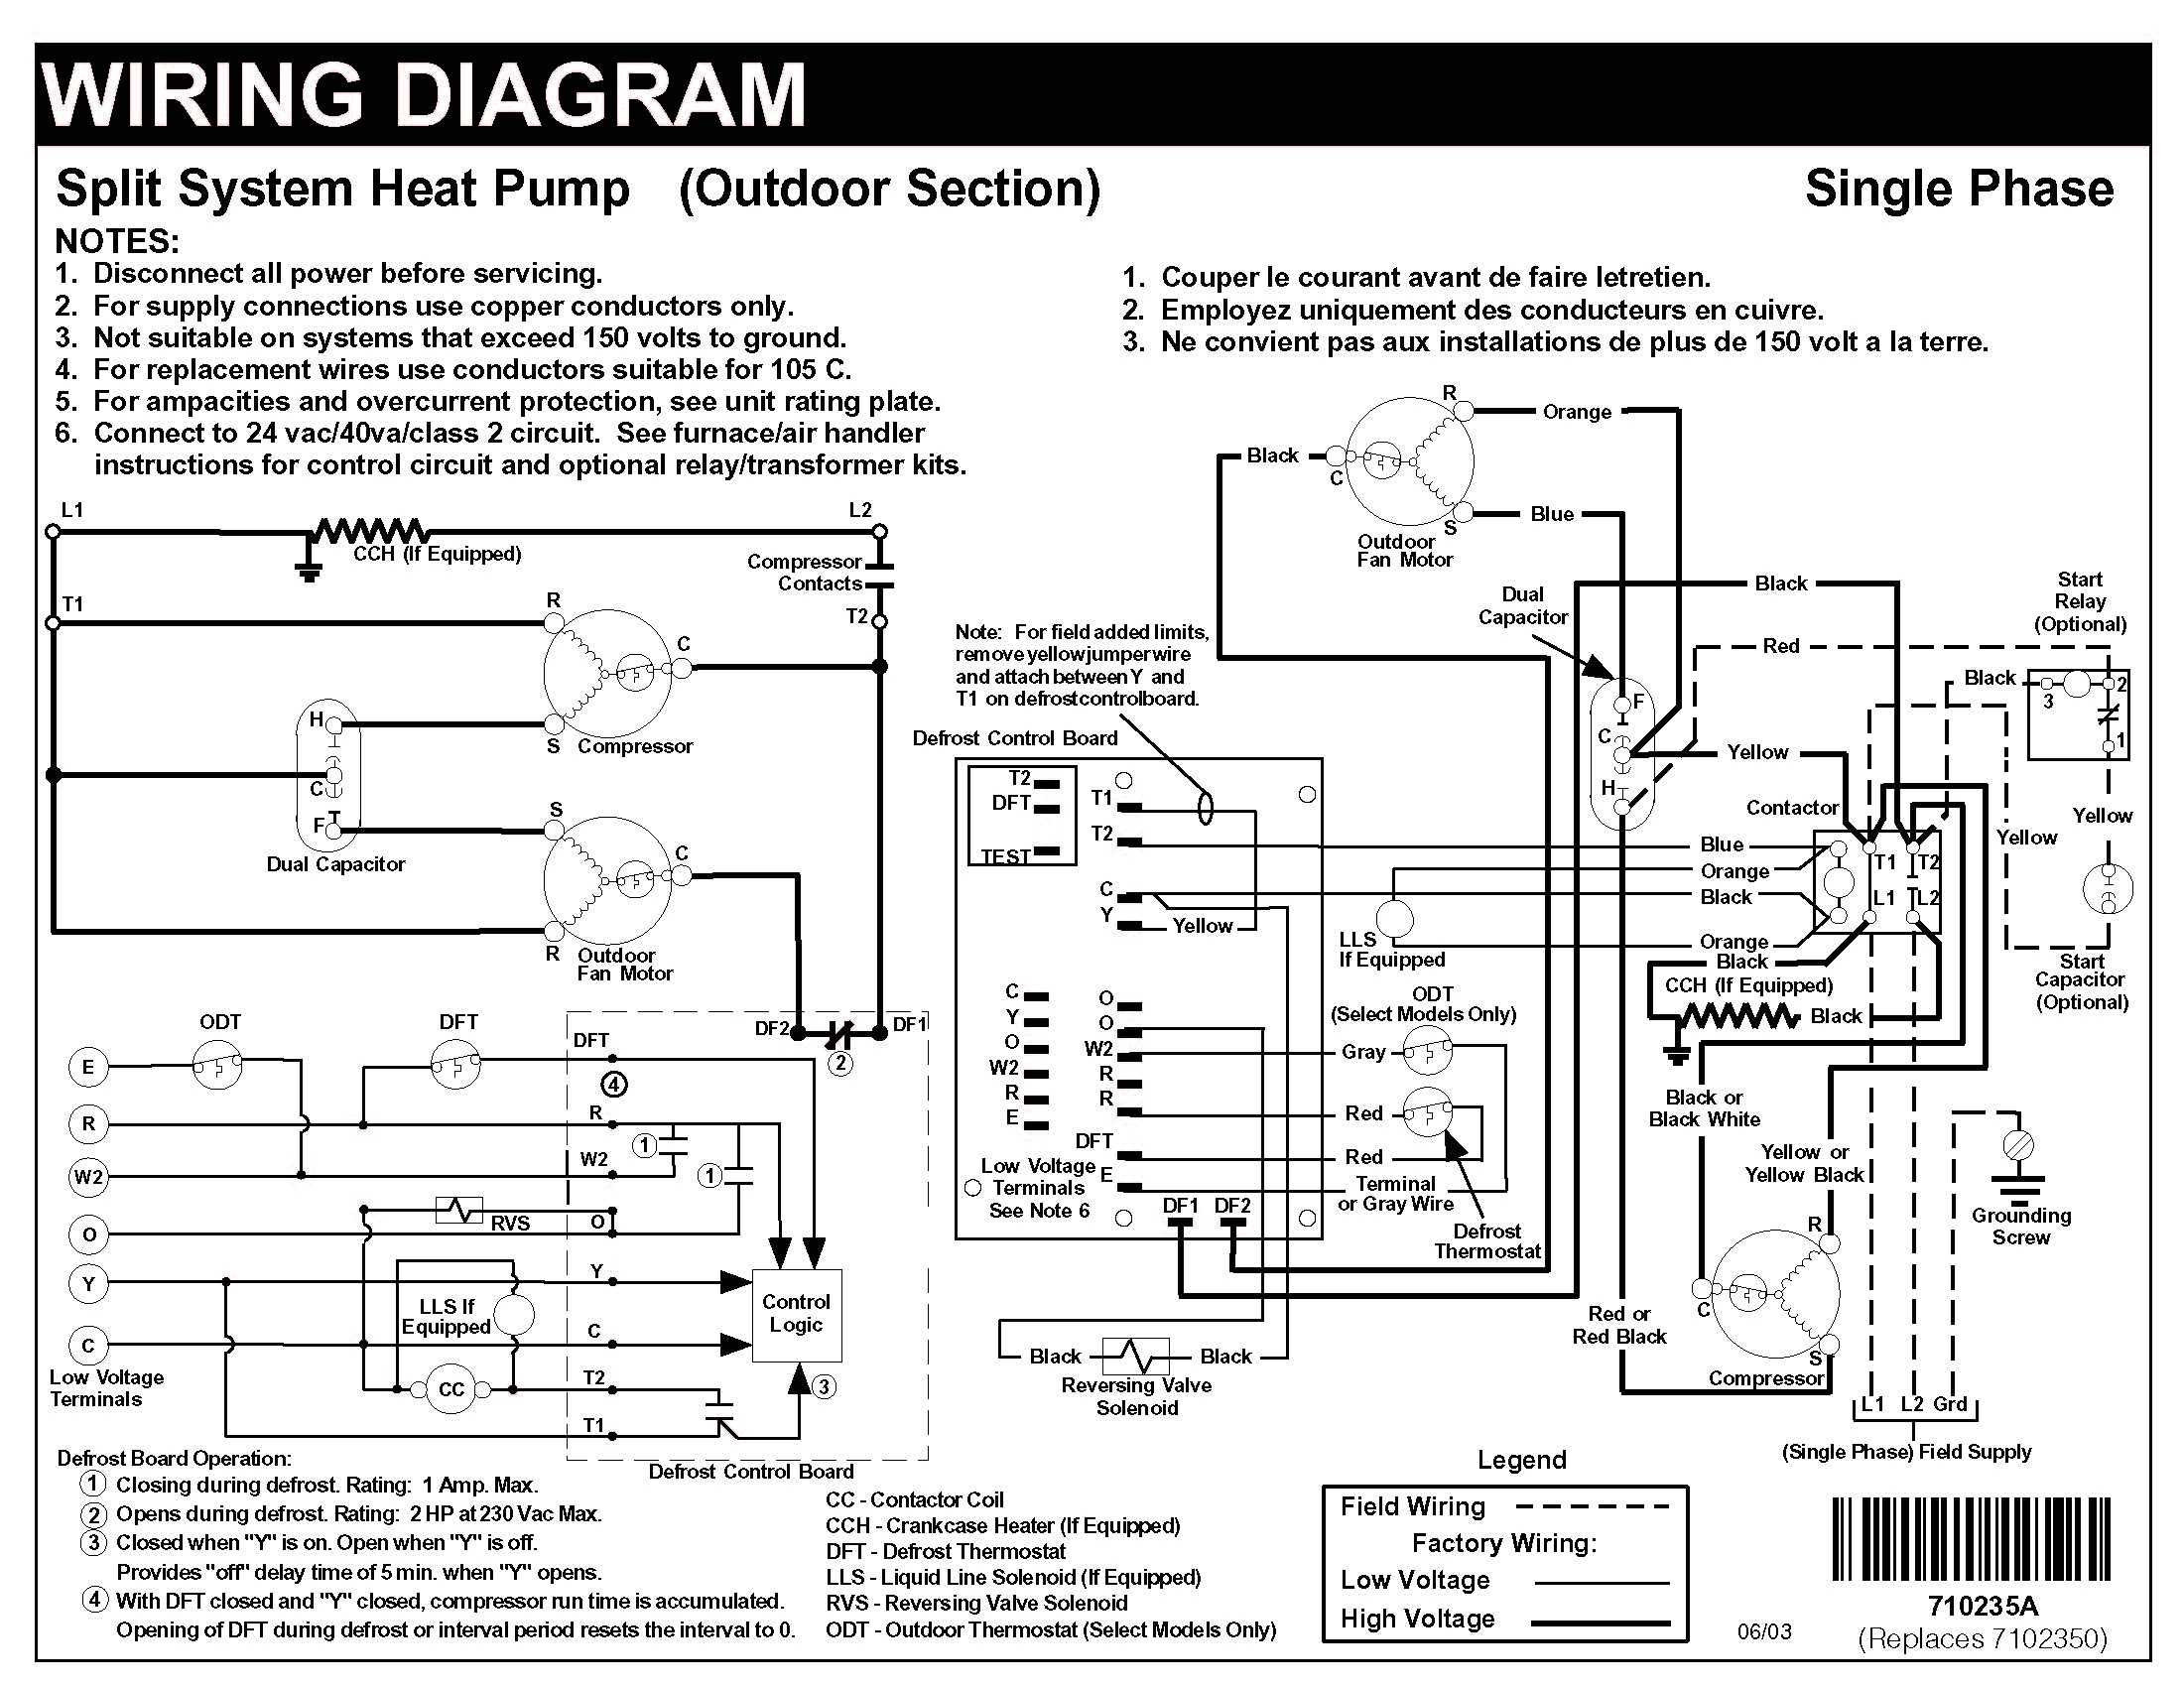 nordyne intertherm wiring diagram intertherm heat pump wiring diagram collection intertherm wiring diagram heat #3